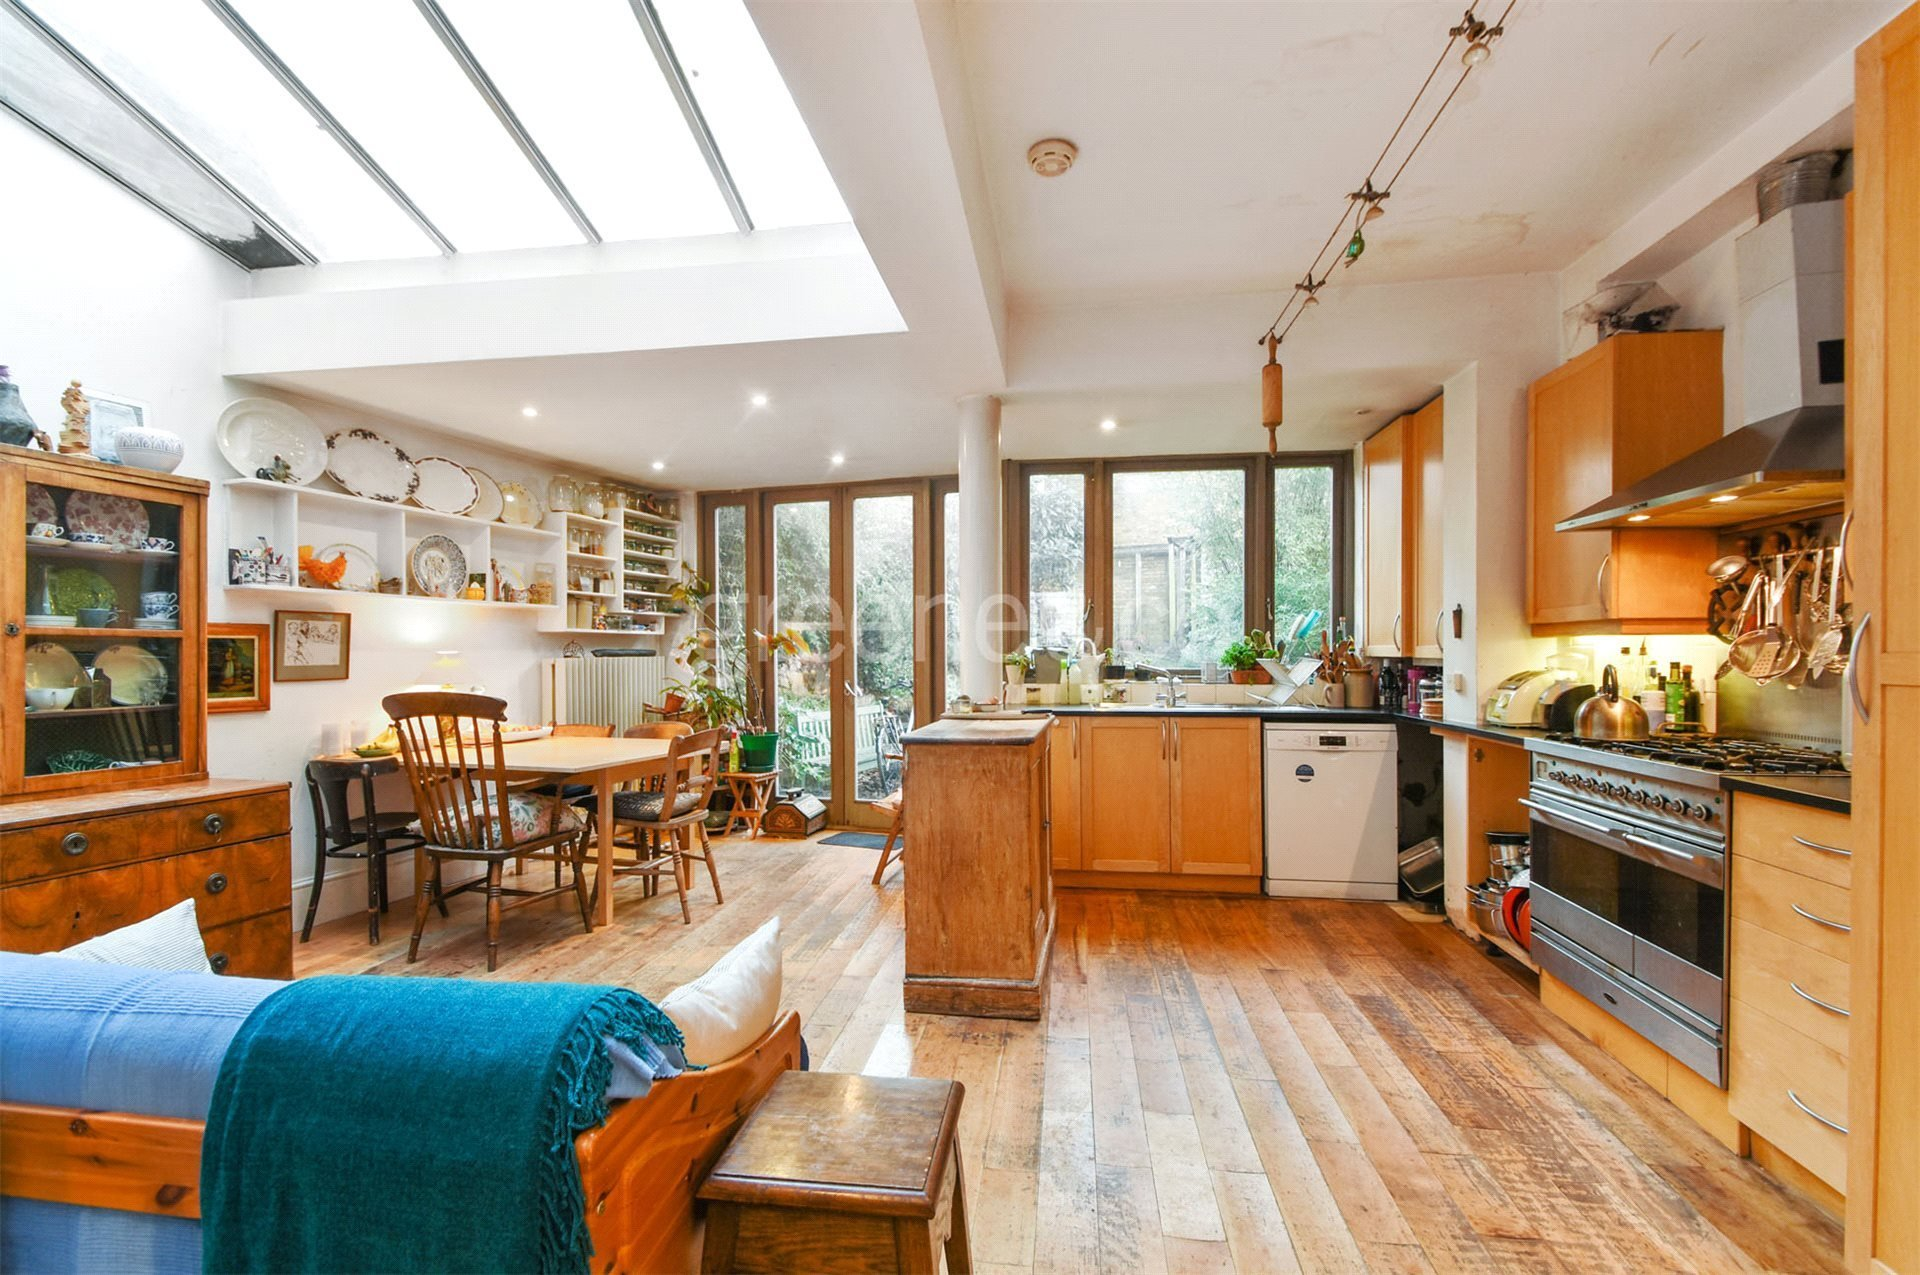 Best 4 Bedroom House For Sale In Torriano Avenue Kentish Town London Nw5 Ktn150141 Greene Co With Pictures